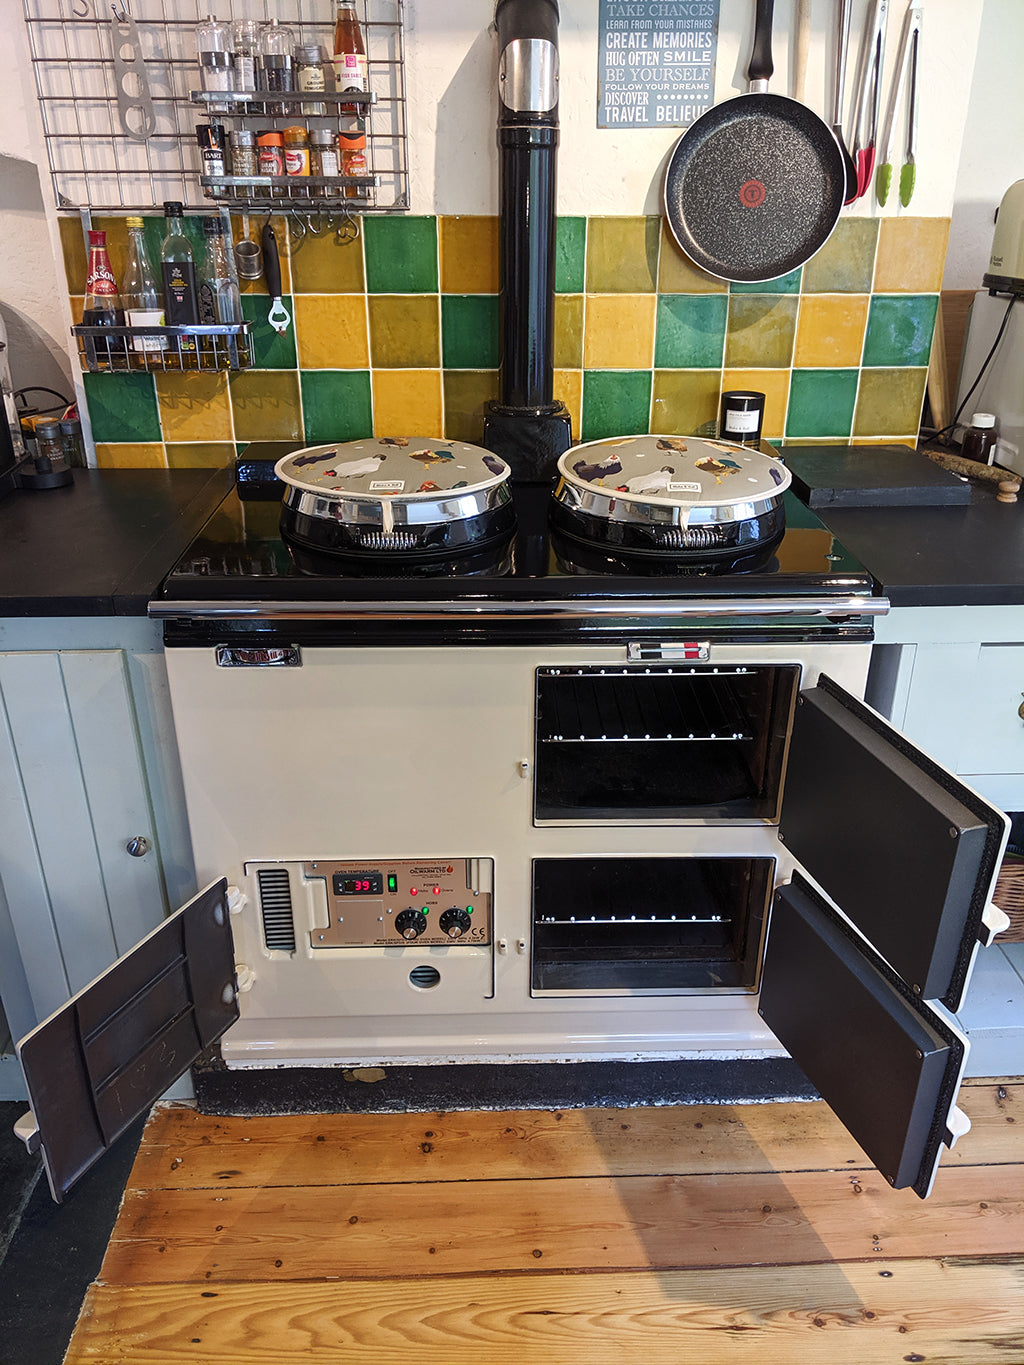 A Beautiful Home, Kitchen & Cooker - We Felt Very Welcome - An Ivory Re-enamel & Conversion